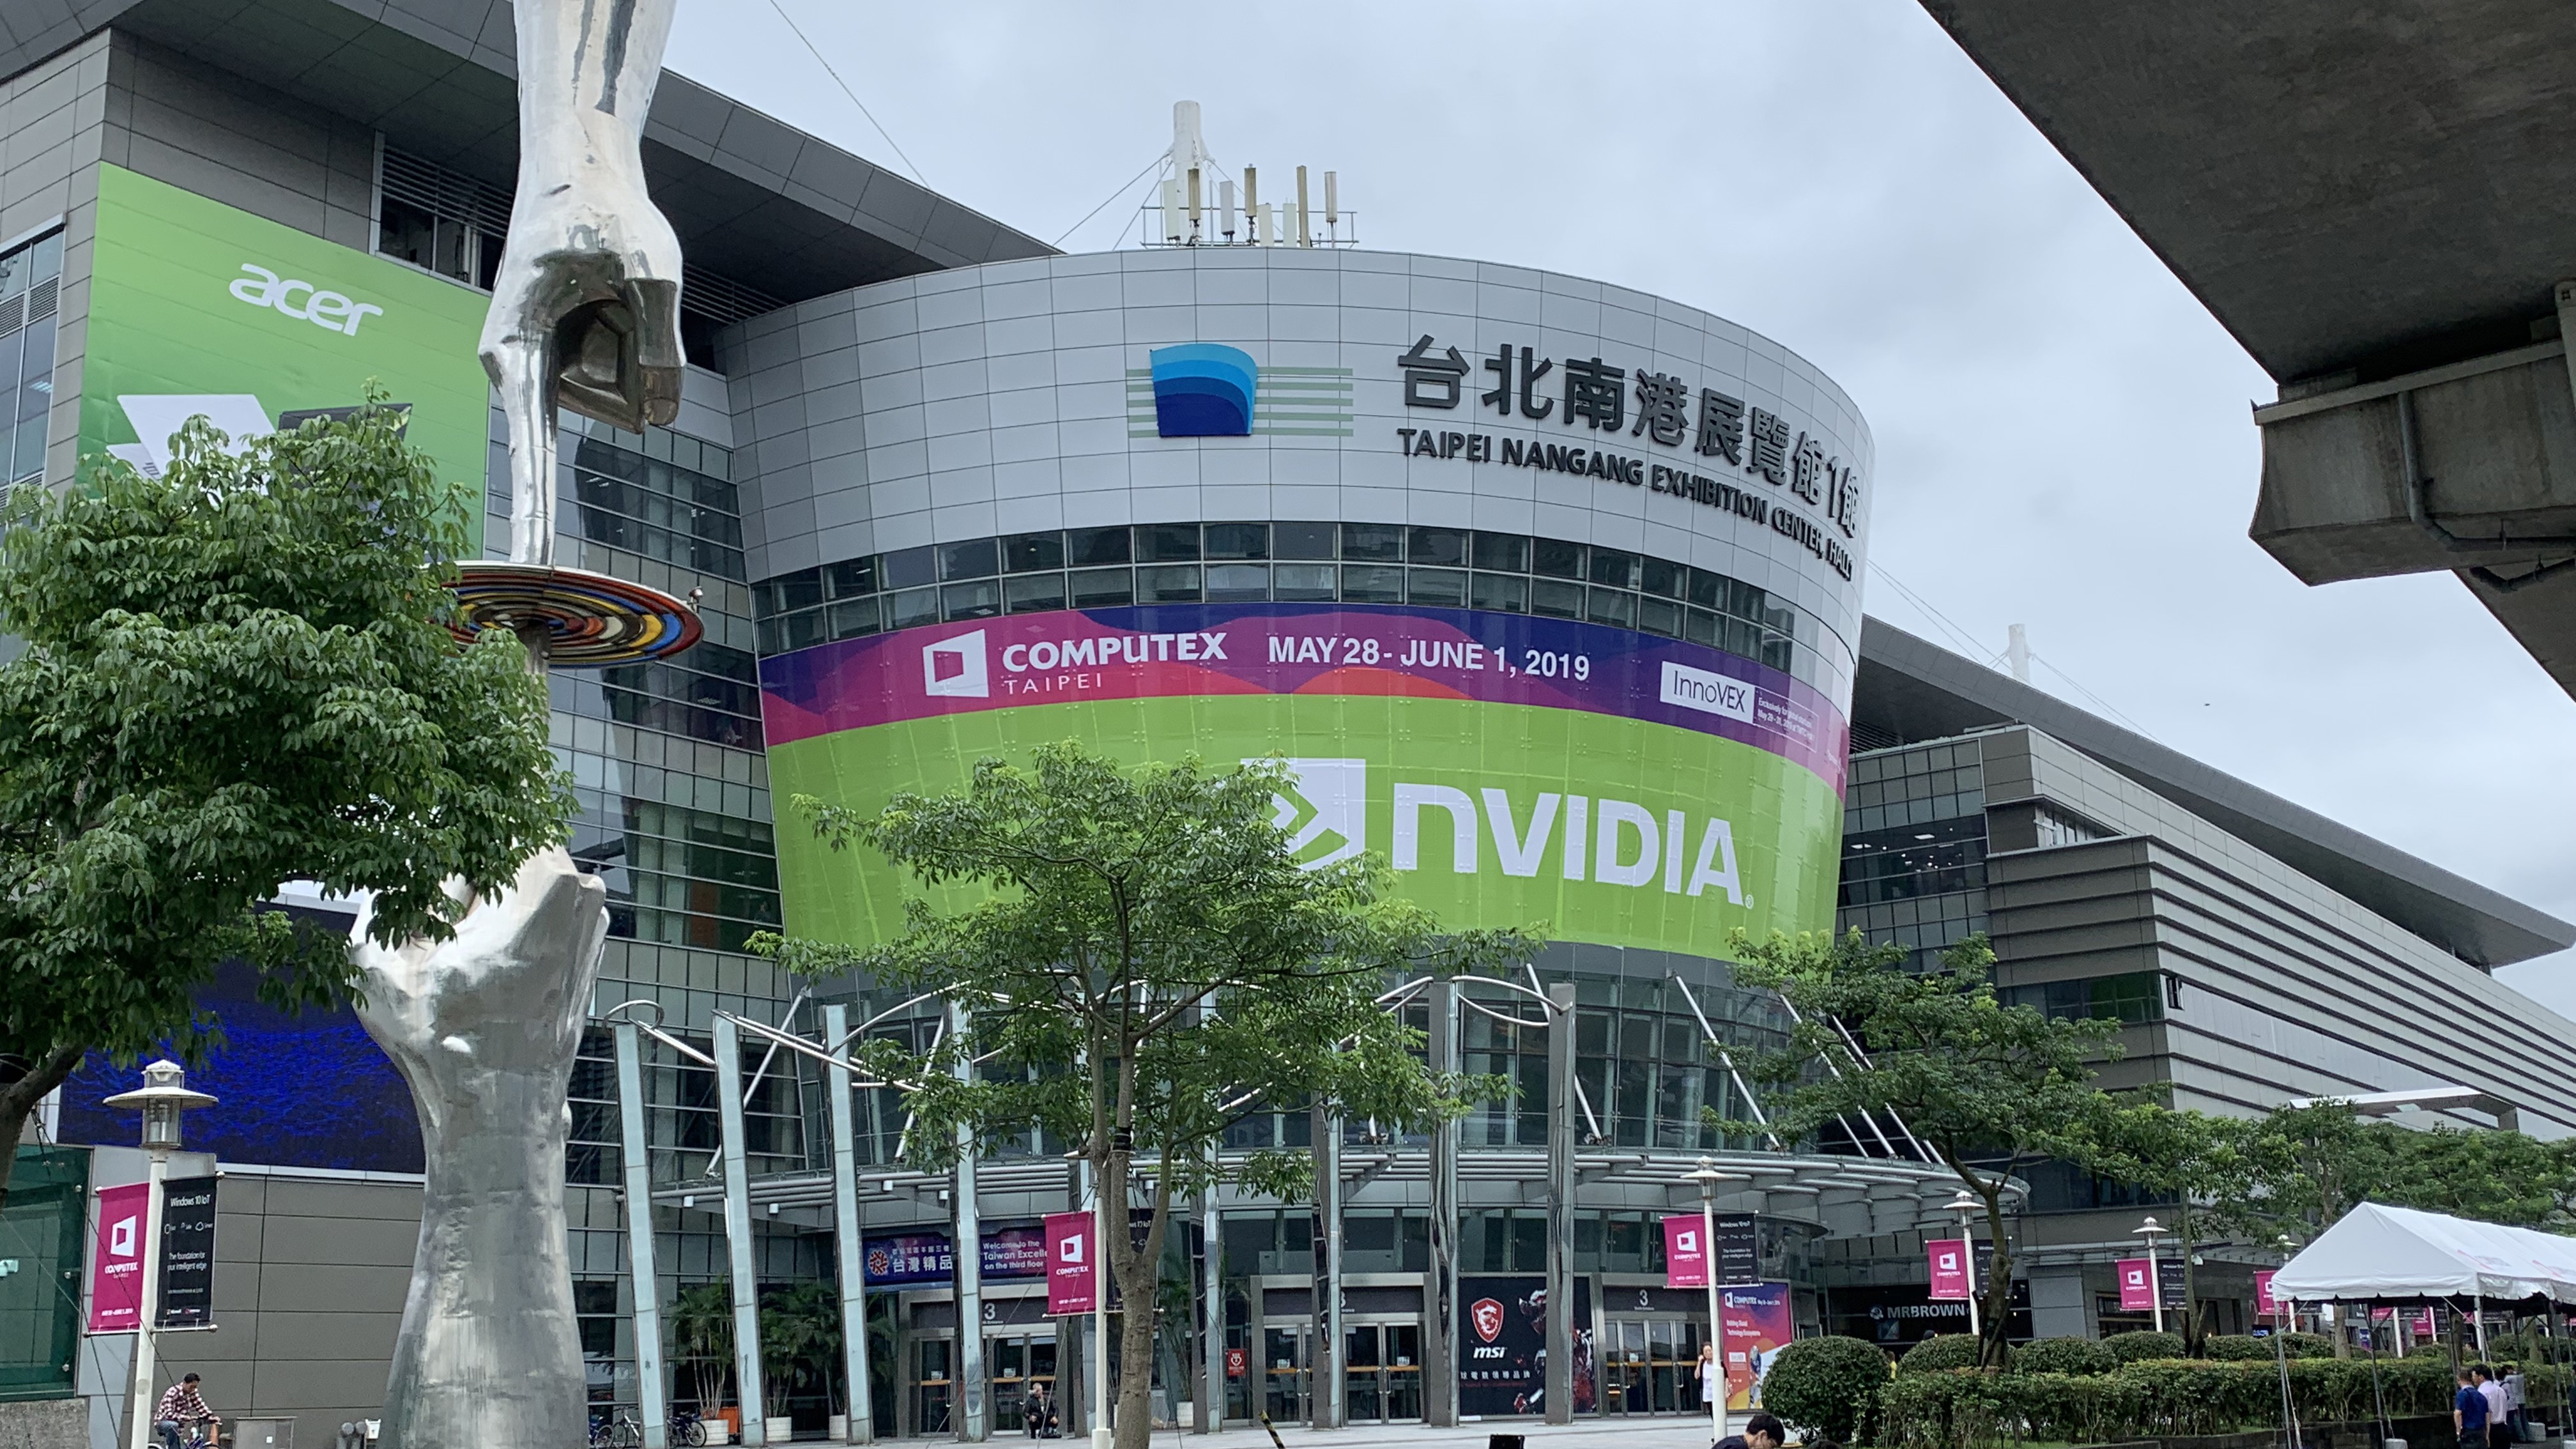 Computex 2019: the latest news from the world's biggest computer